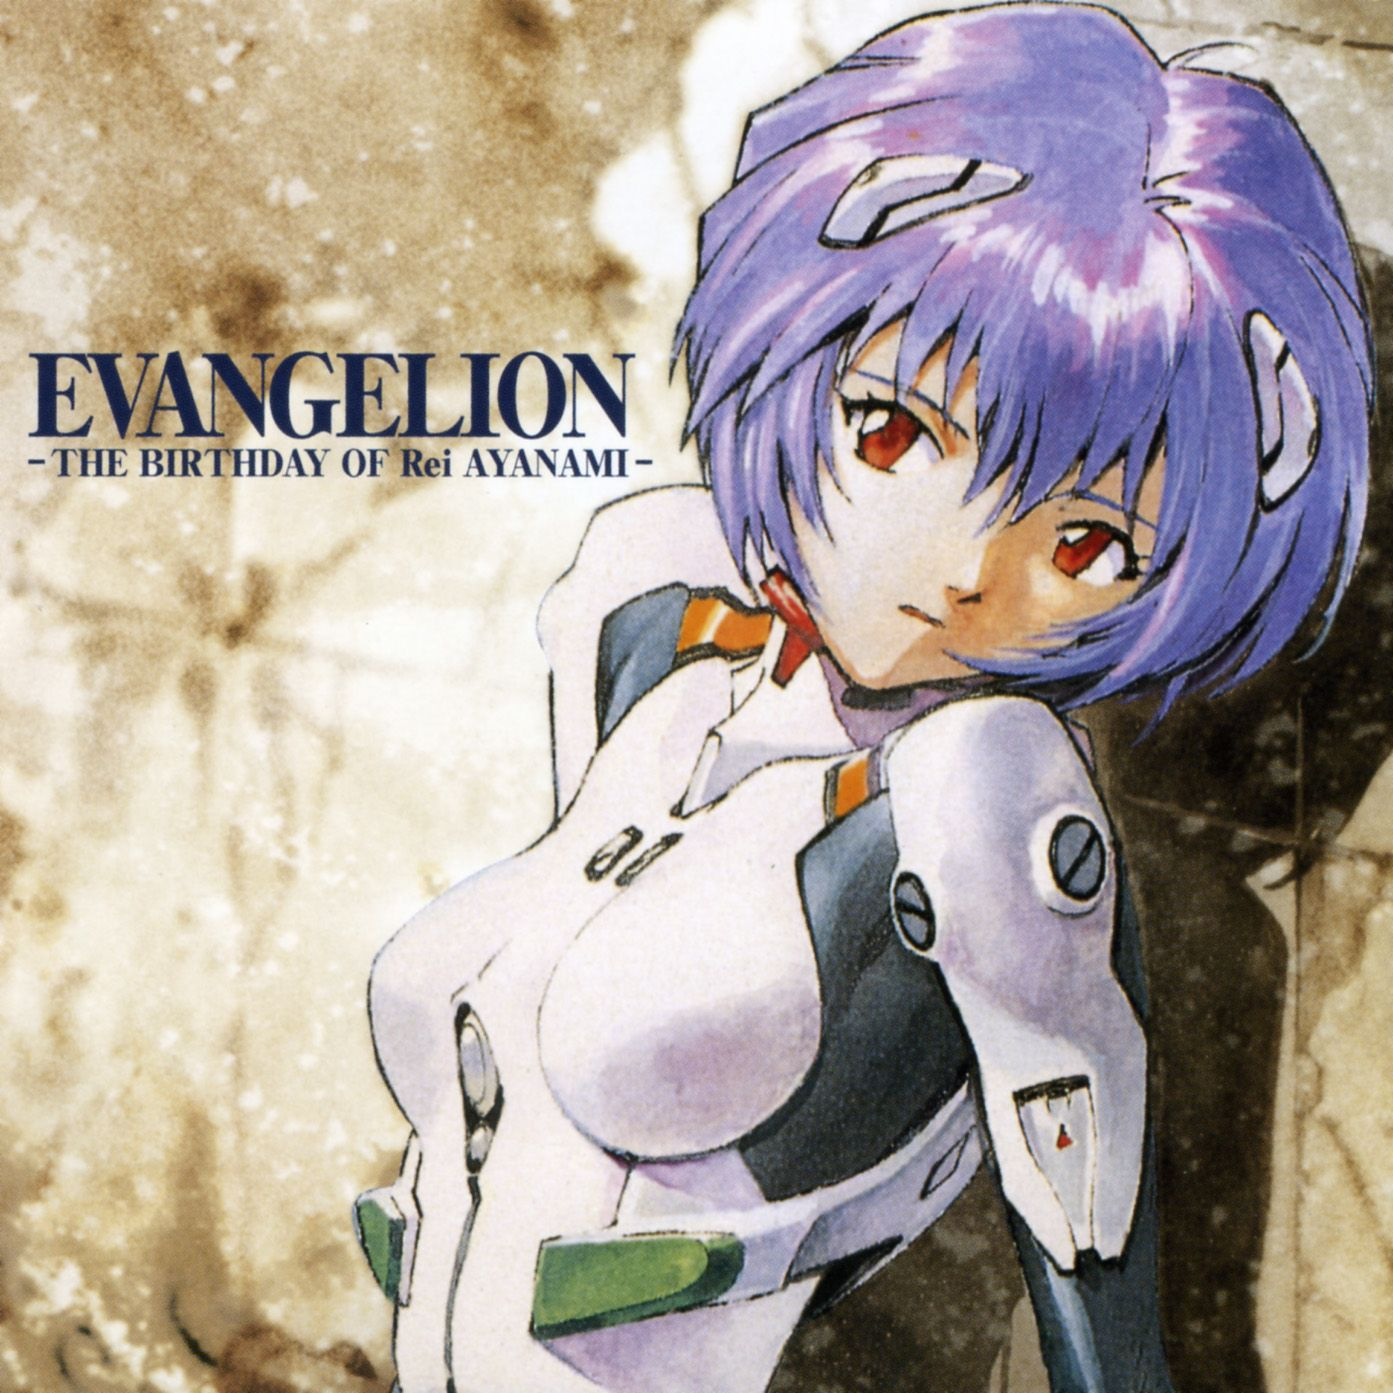 Evangelion The Birthday of Rei Ayanami 林原惠 -《新世纪福音战士: 绫波丽的生日》